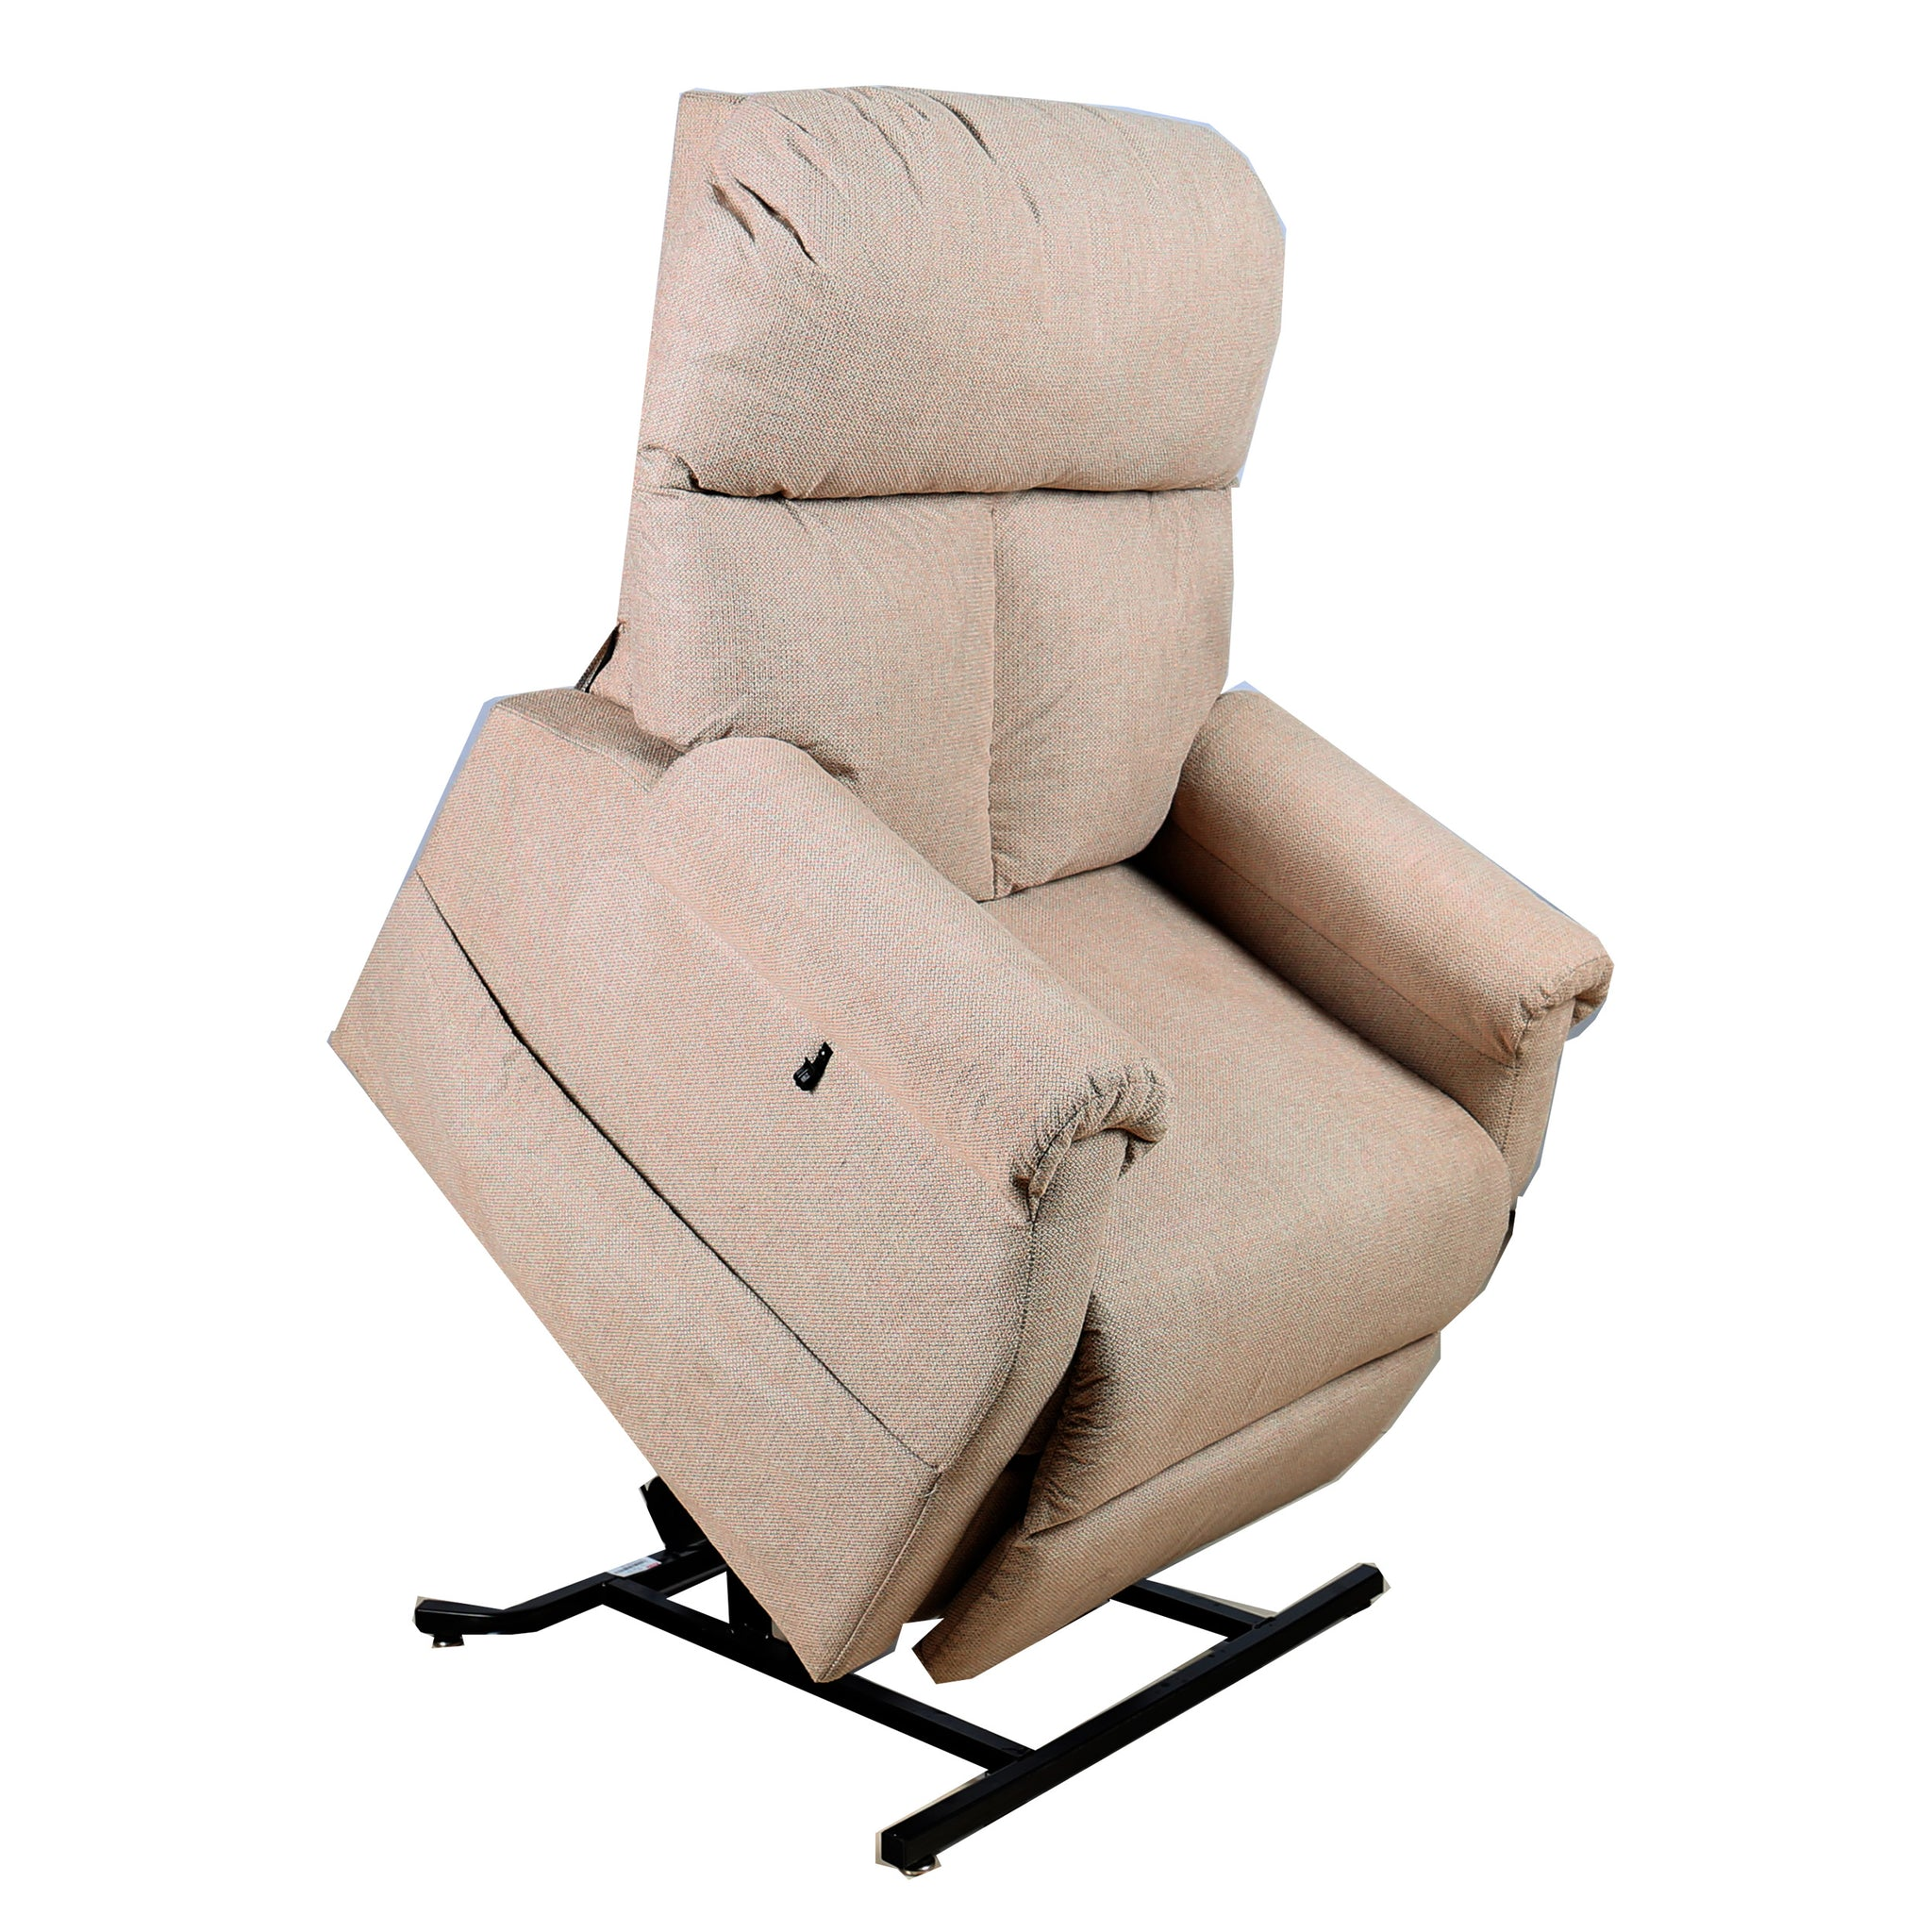 New Pride Merino LC101 Rise and Recline Chair